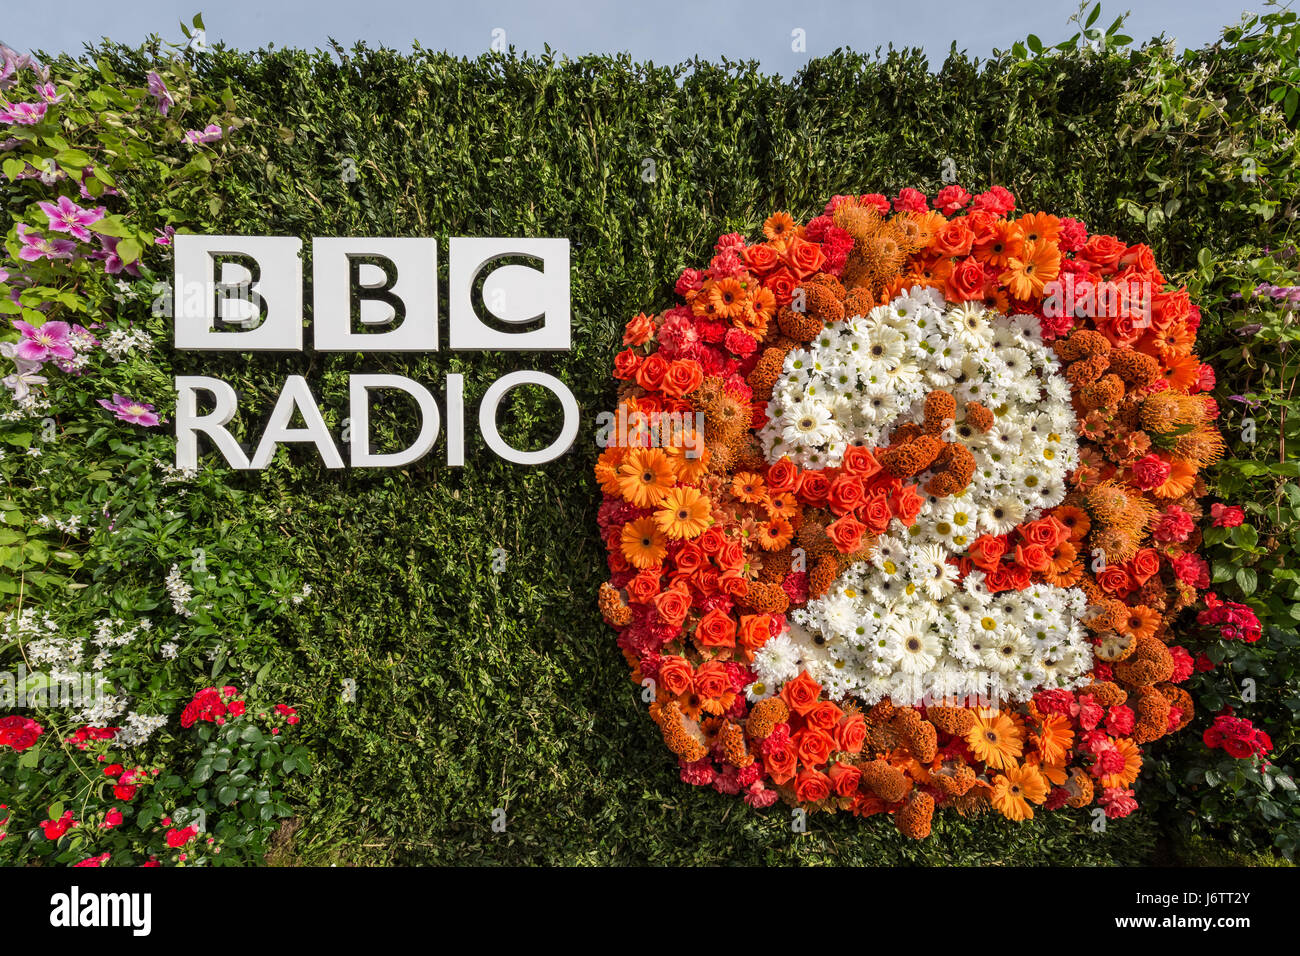 Chelsea flower show channel 4